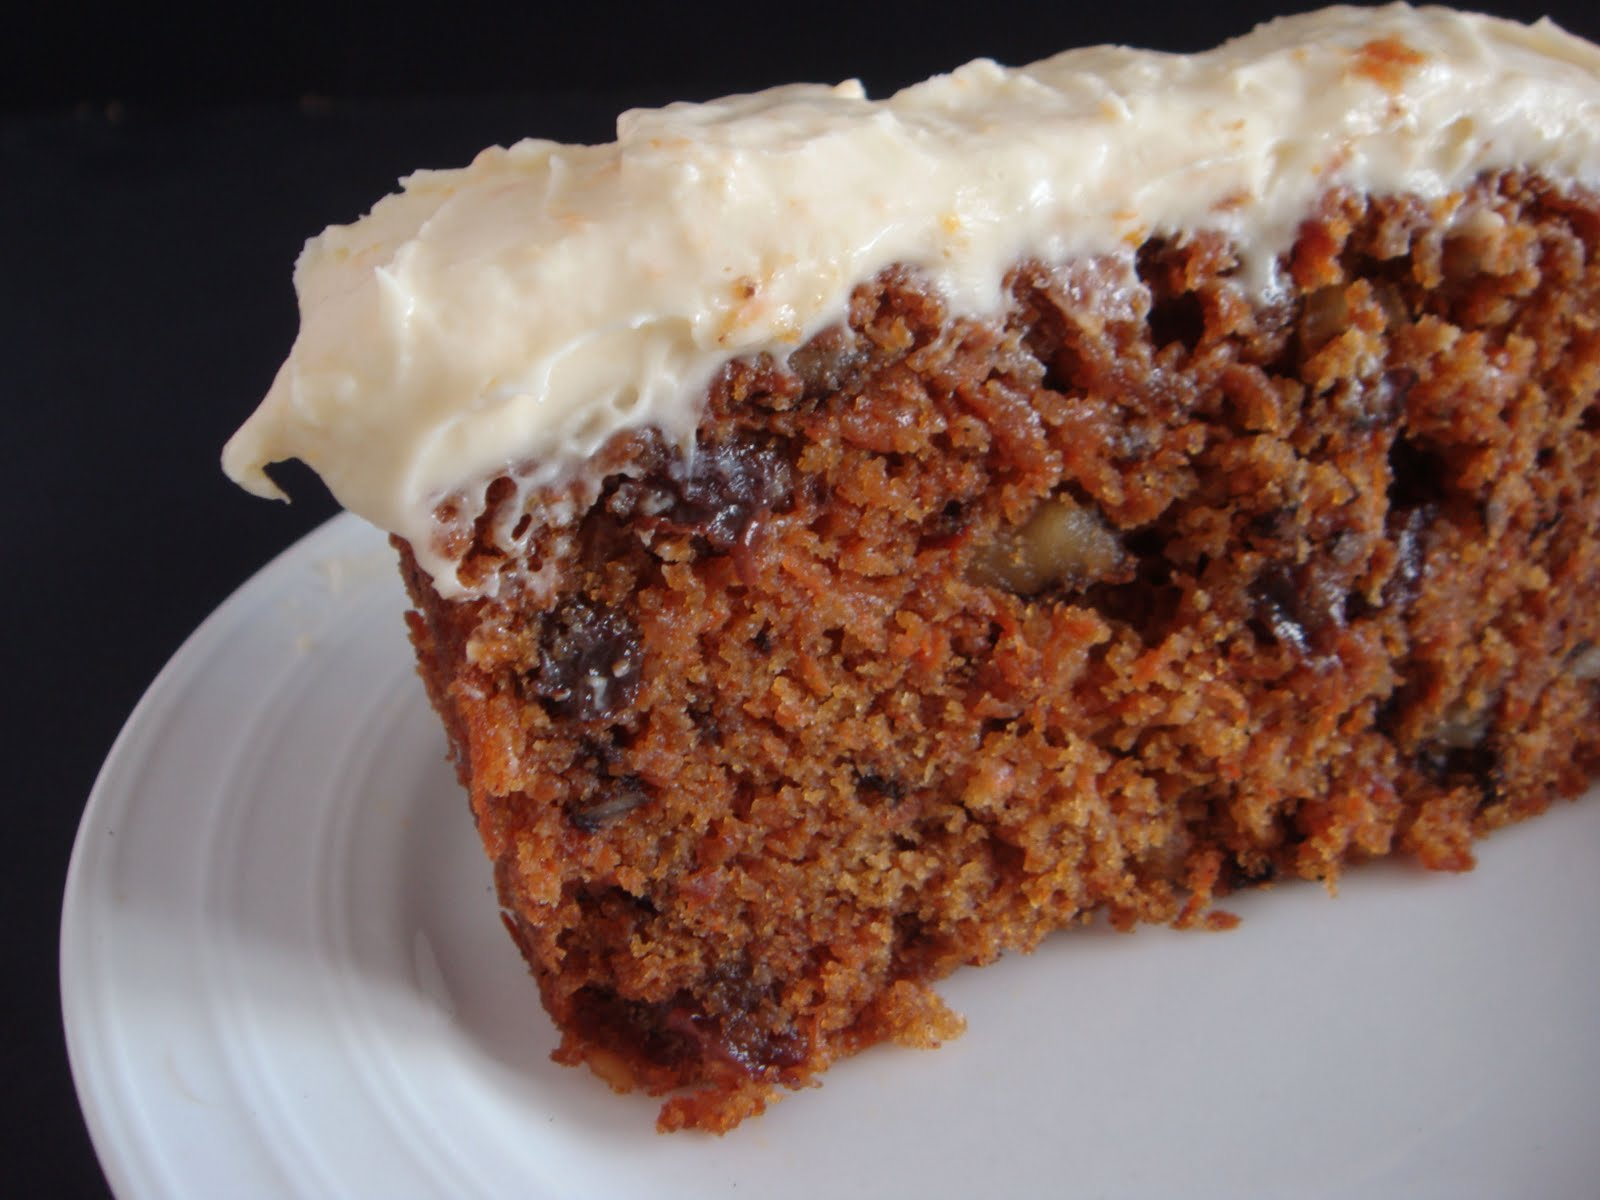 Baking Library: Carrot Cake with Orange Cream Cheese Frosting